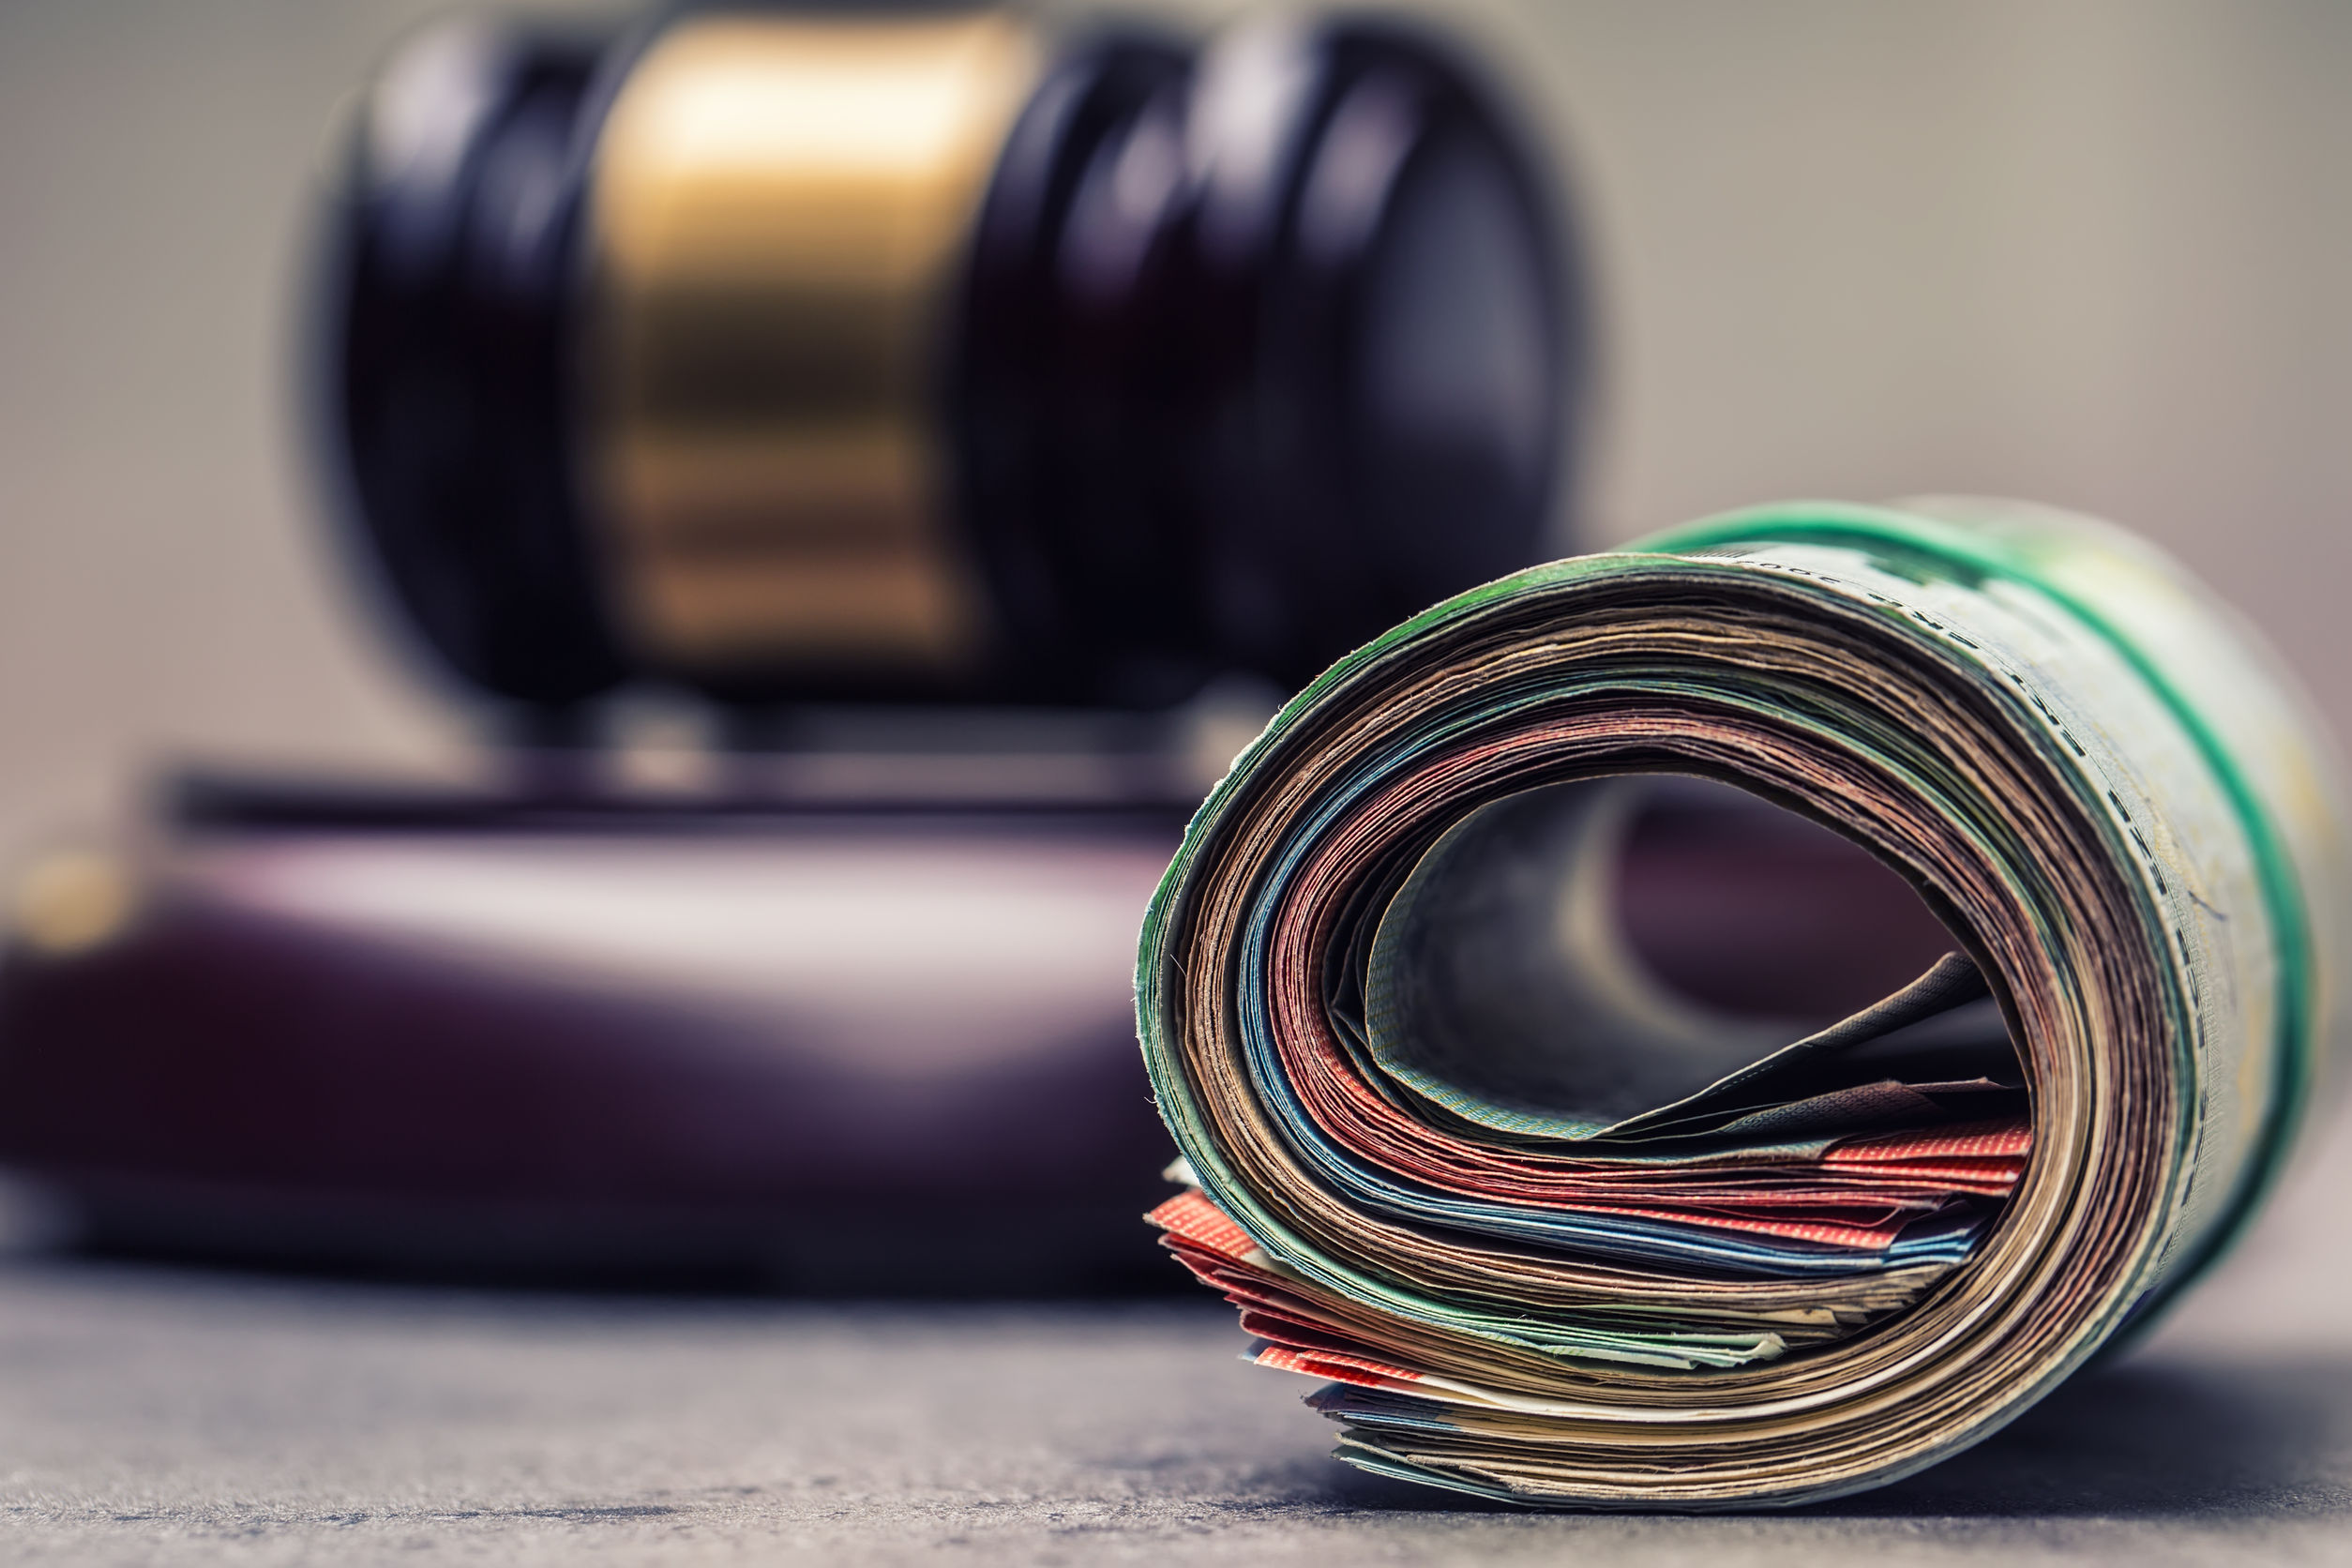 Dismissals 'R' Us: A New Trend in 'shake down' litigation putting commercial pressure on Employers